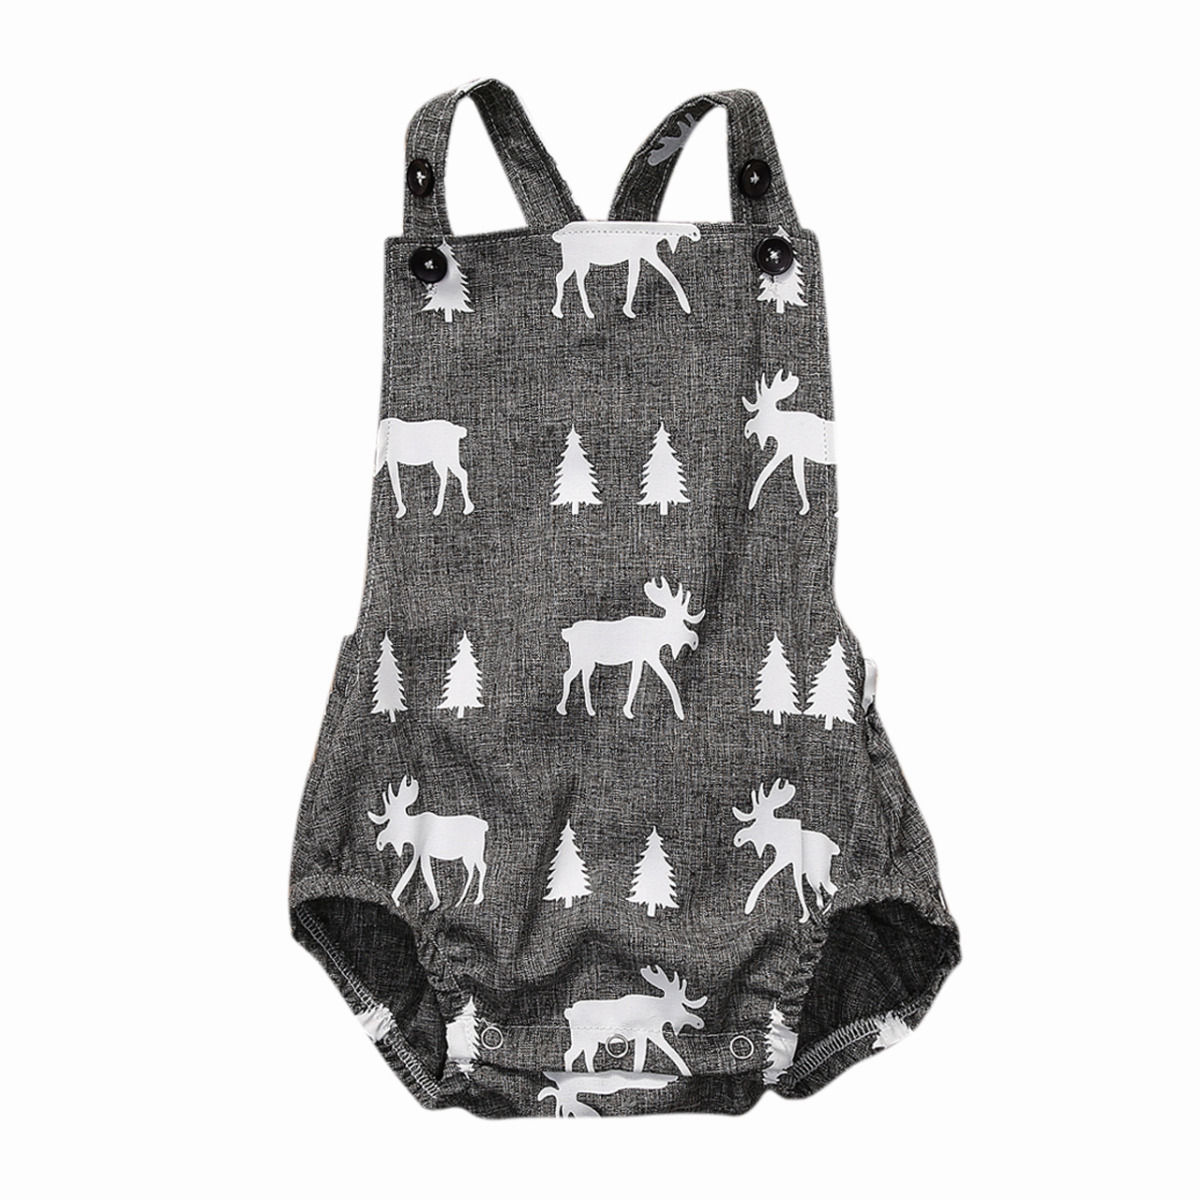 Cute Baby Romper Newborn Baby Boy Girl Fawn Clothes Sleeveless Deer Playsuit Romper Jumpsuit Outfit Sunsuit 0-2Y gentlemen style striped baby boy romper playsuit